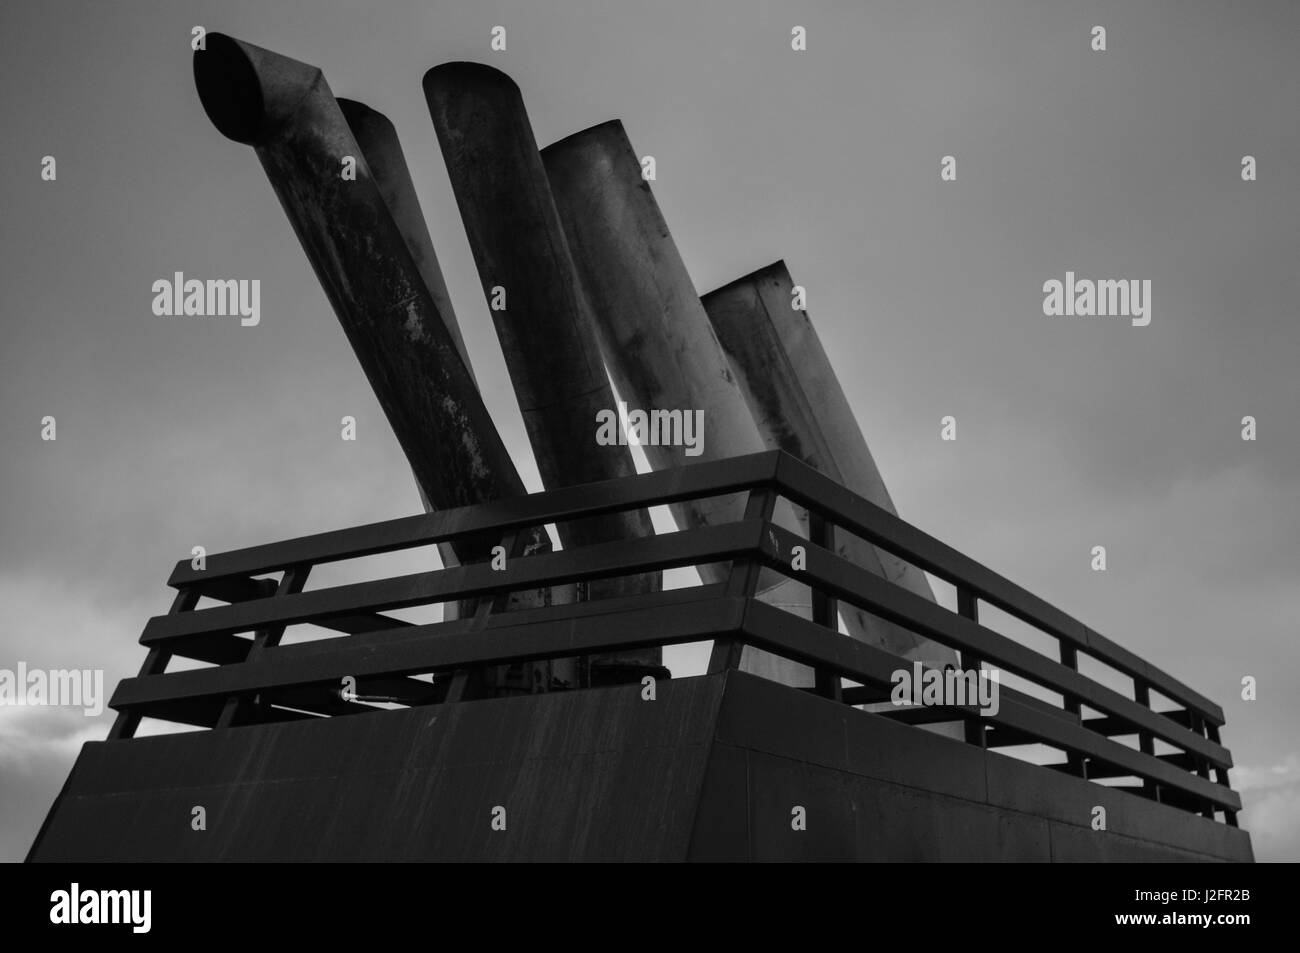 Ship exhaust on the ferry to shetland. The large exhaust fumes contributes to pollution and damage to environment - Stock Image